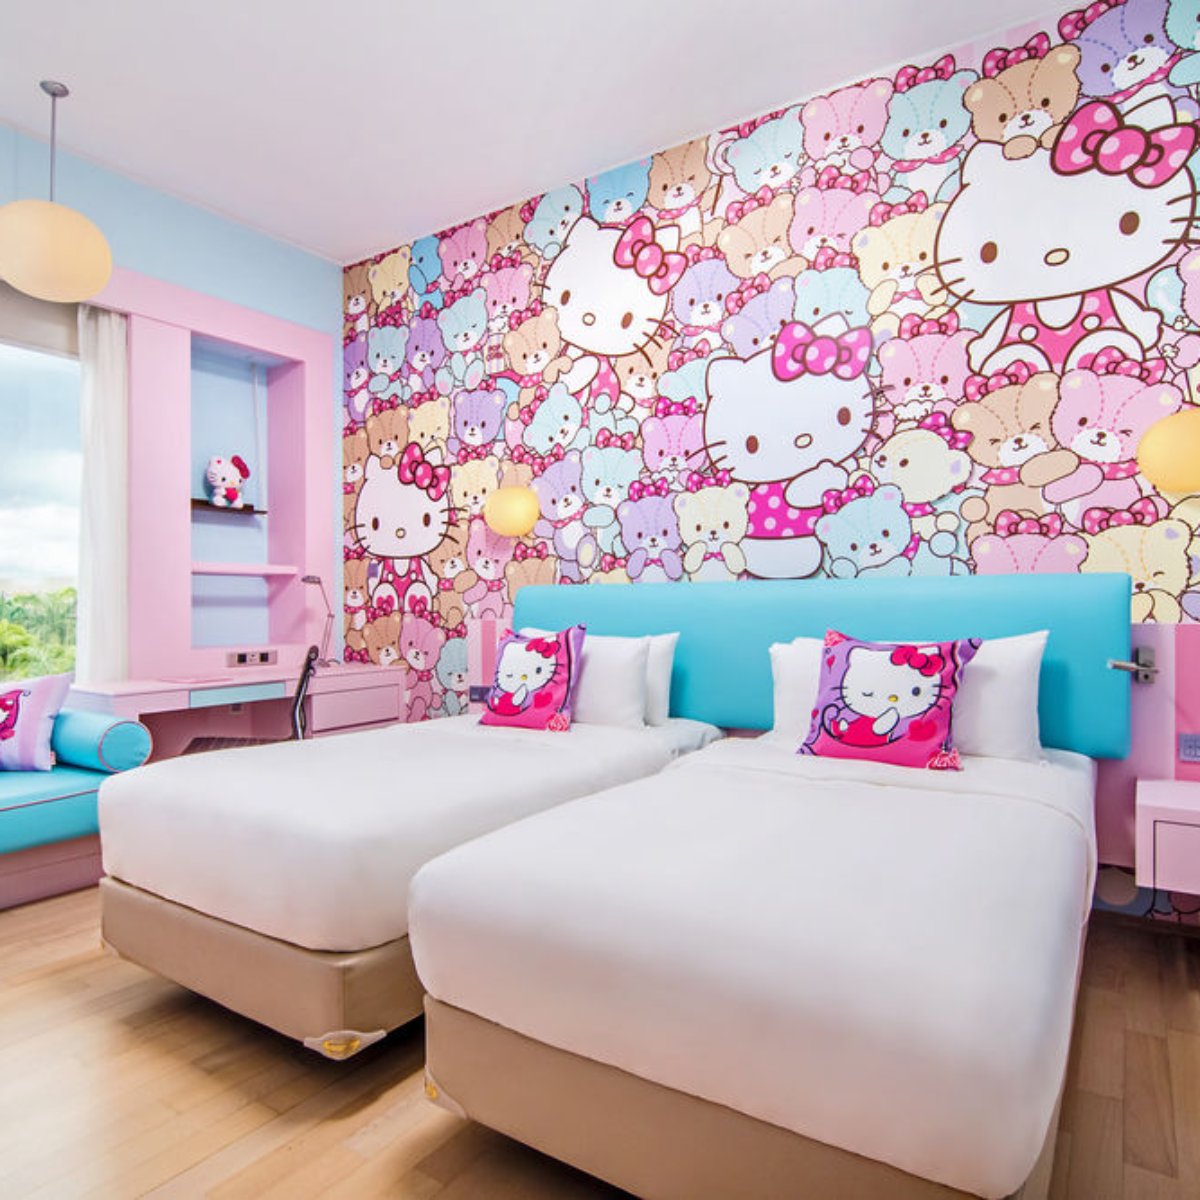 Picture of: 7 Hello Kitty Themed Hotel Rooms In Asia From 31 Night Perfect For Sanrio Lovers